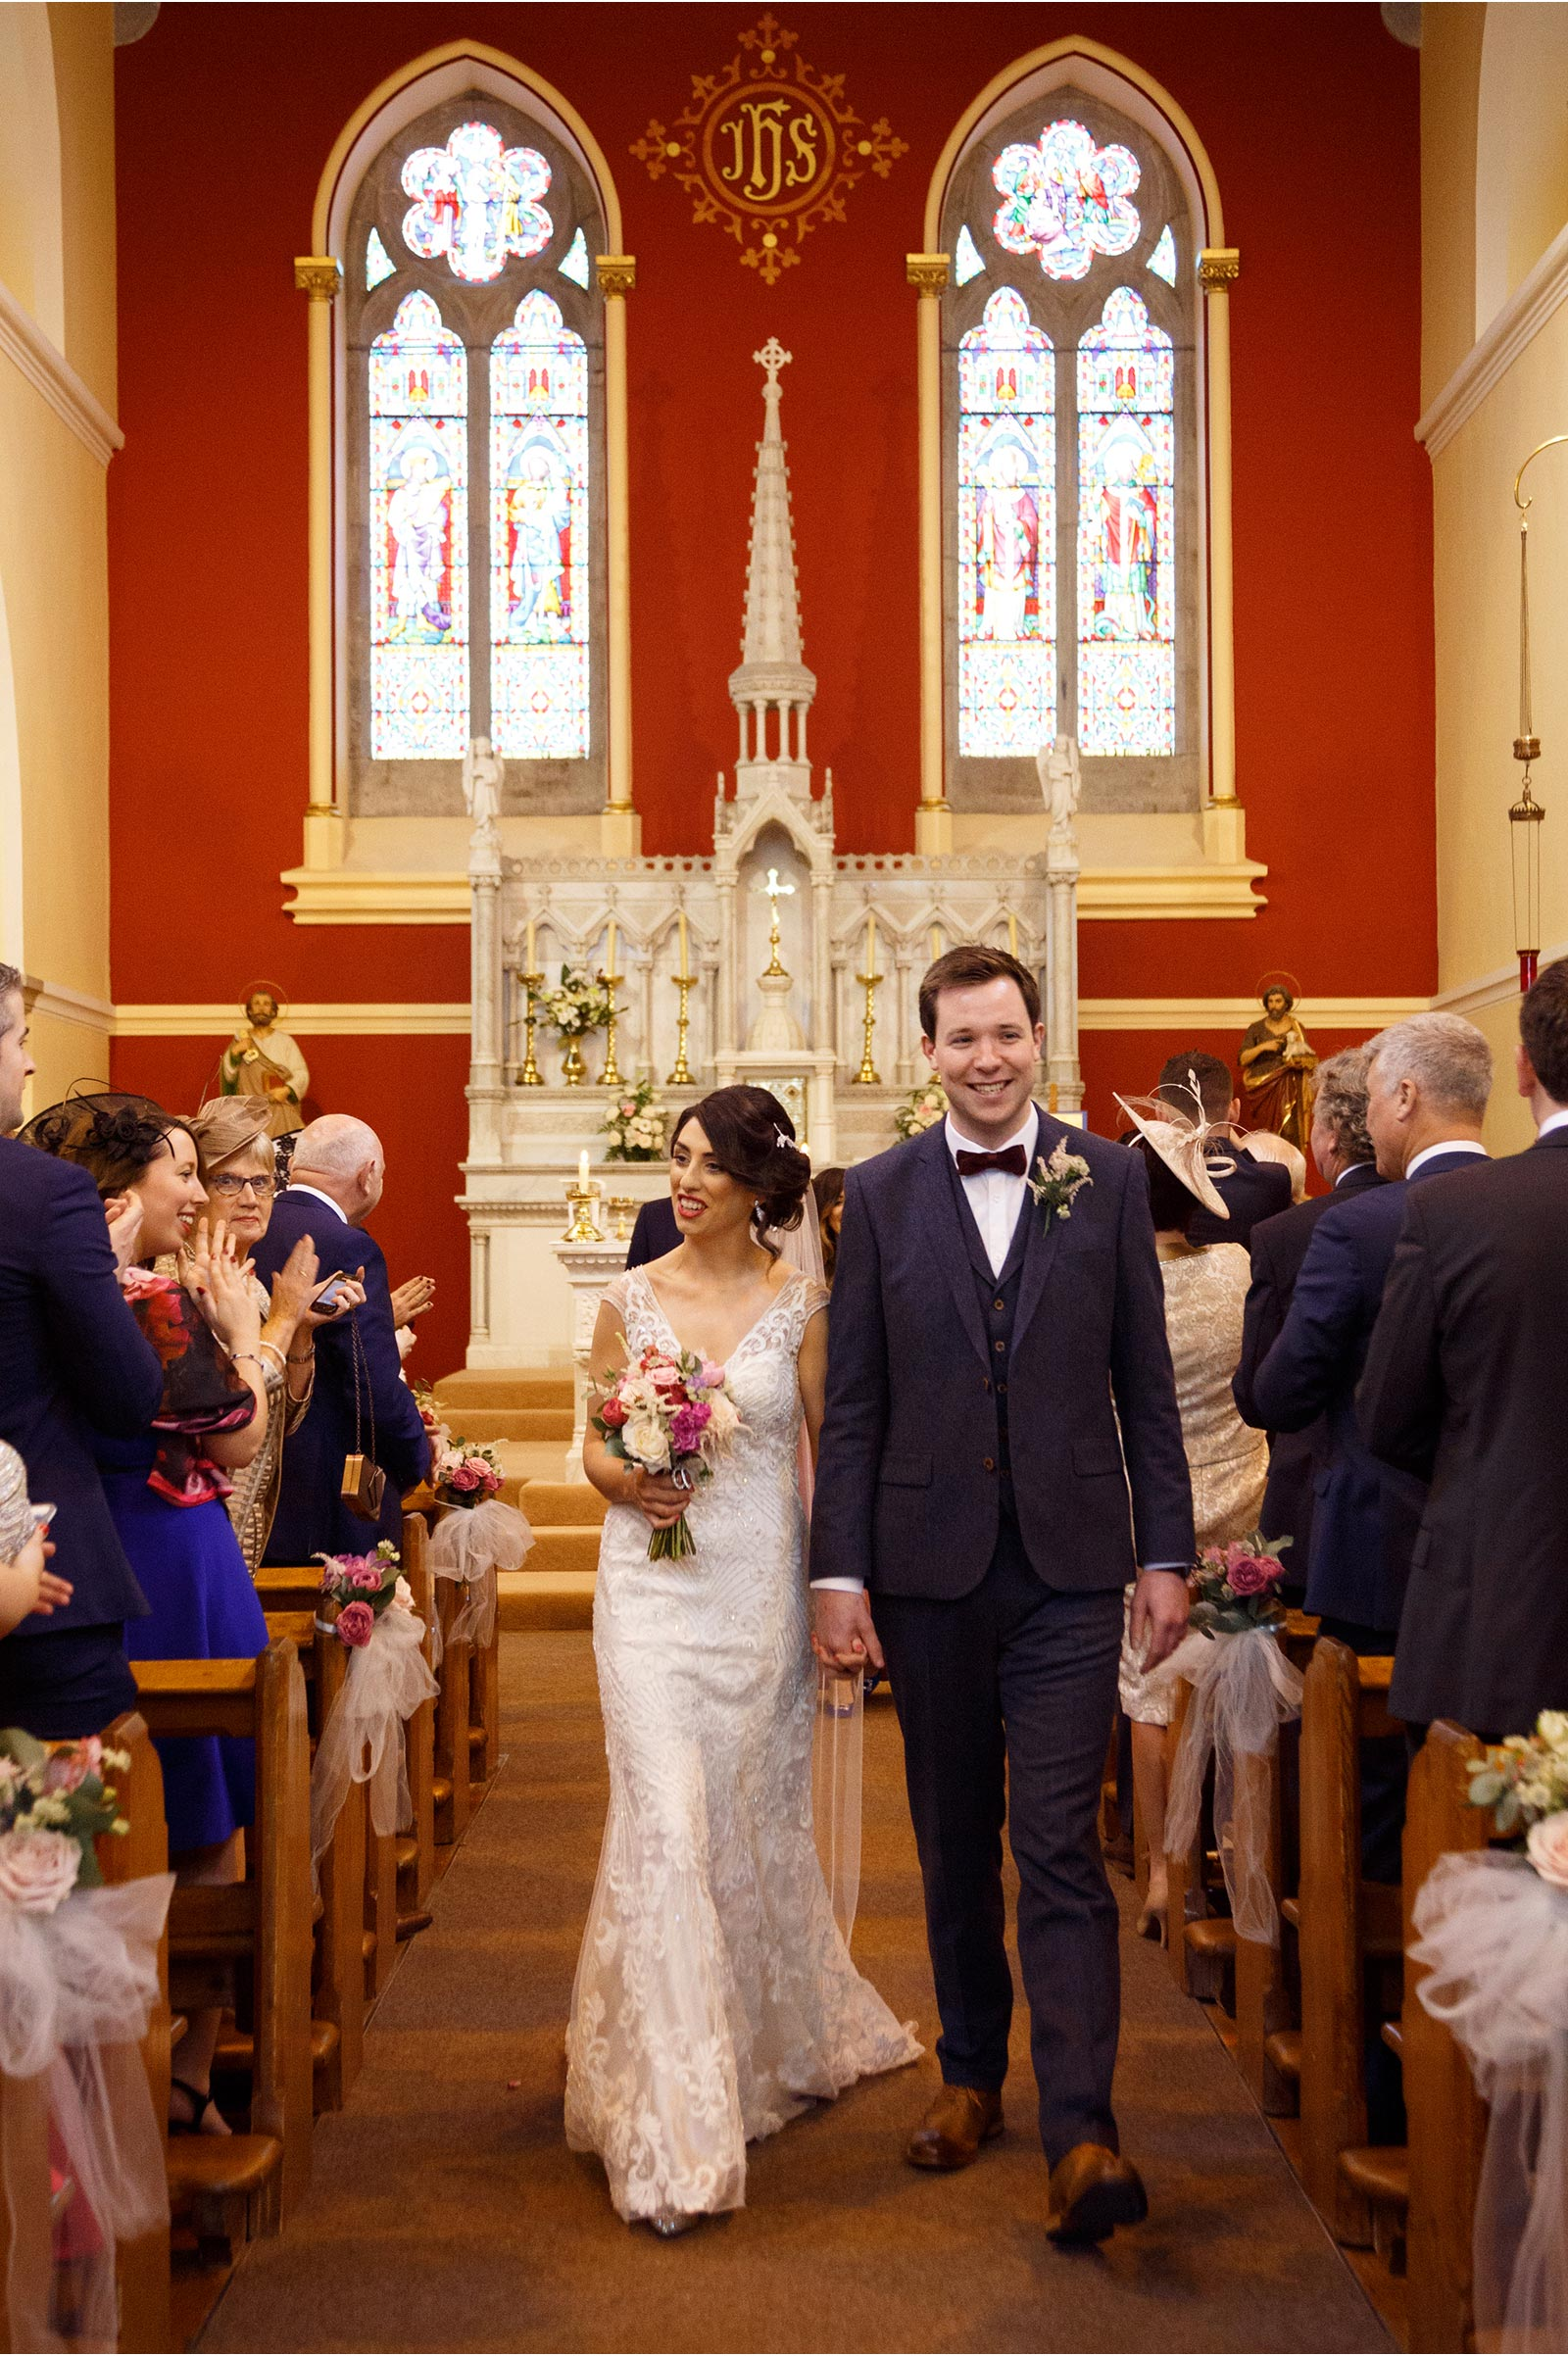 couple walk down the isle of the church